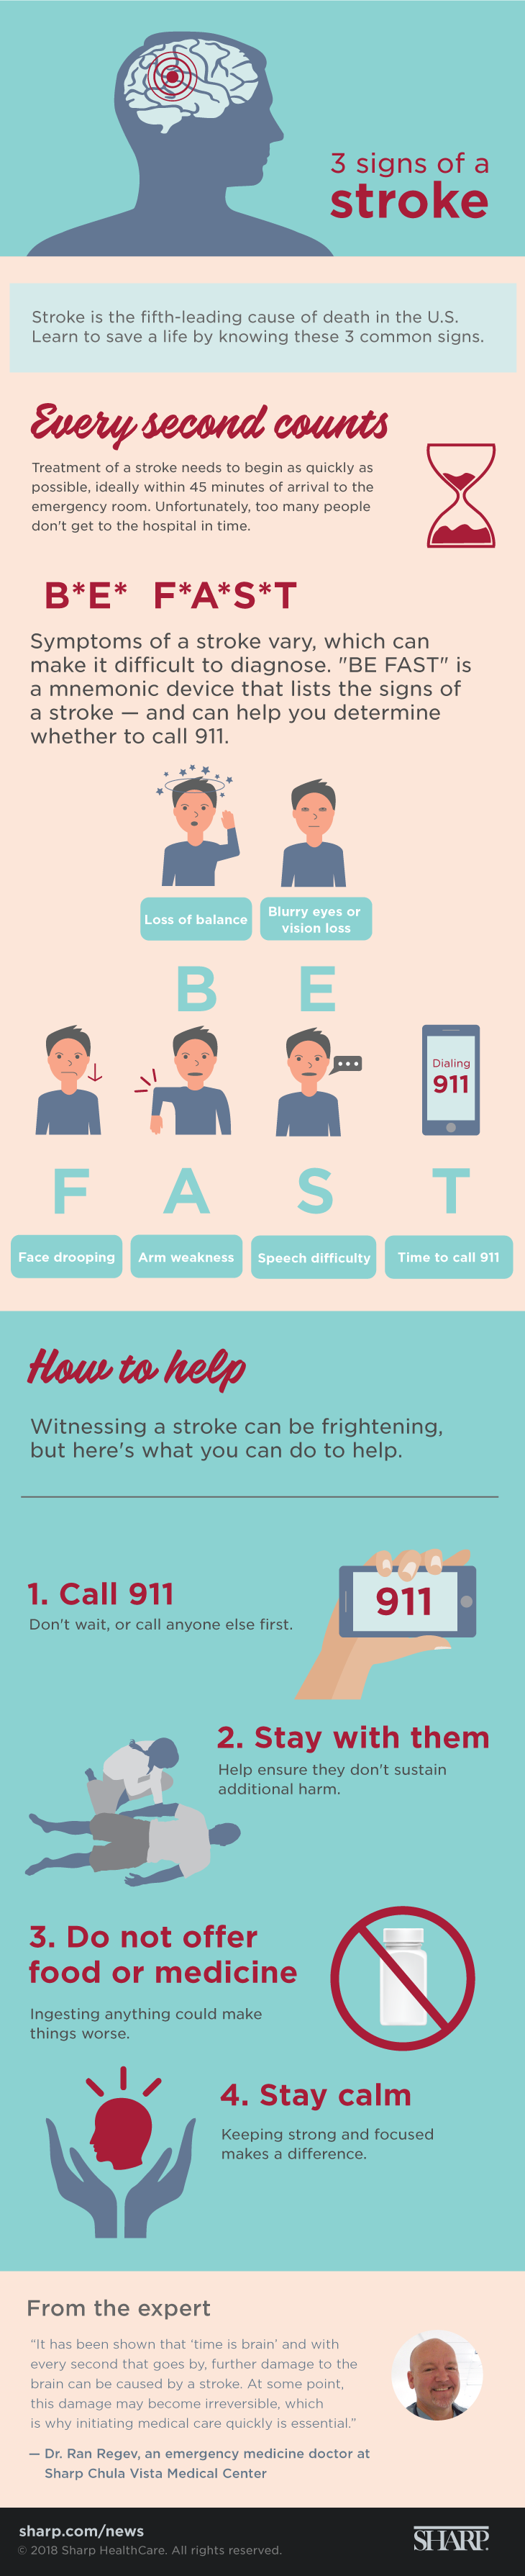 3 signs of a stroke updated 042919 PNG